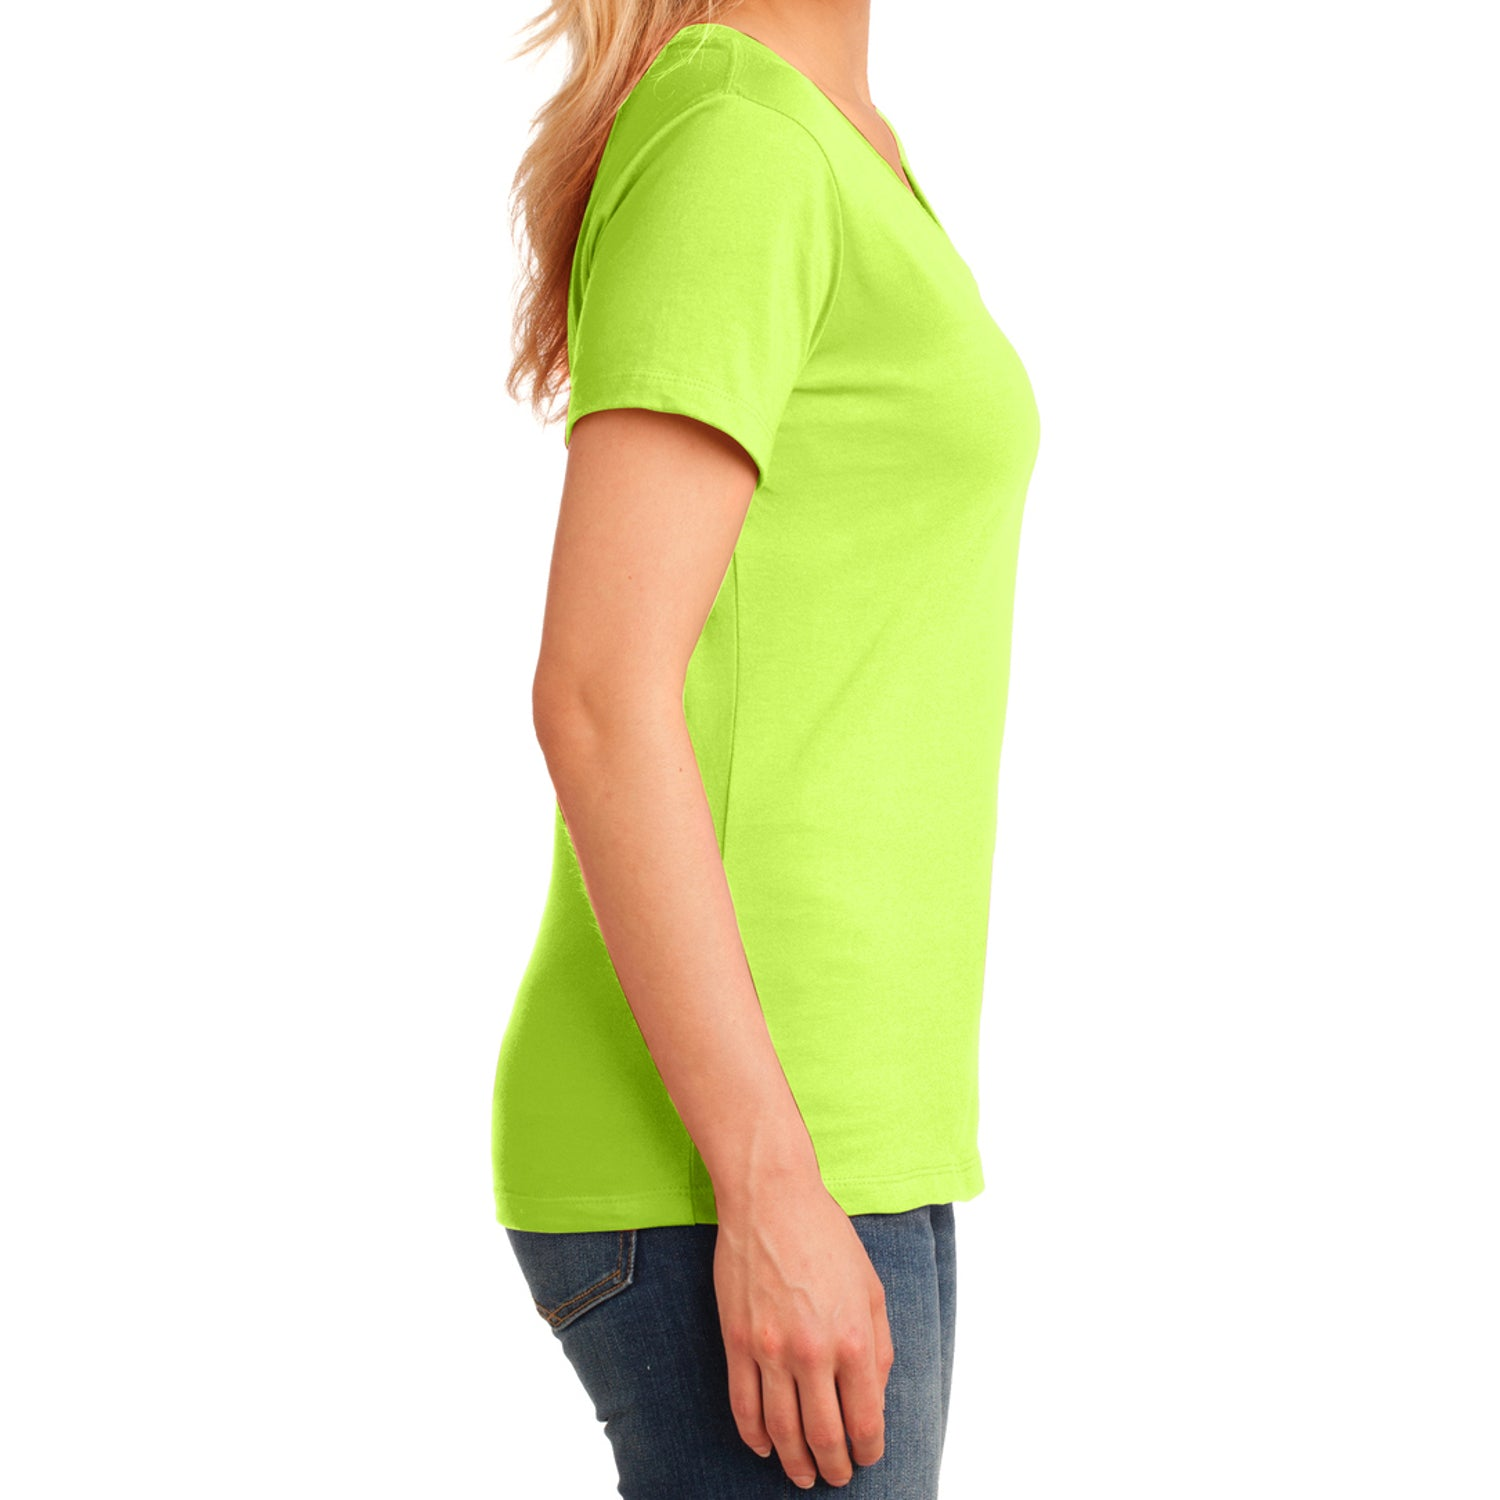 Women's Core Cotton V-Neck Tee - Neon Yellow - Side